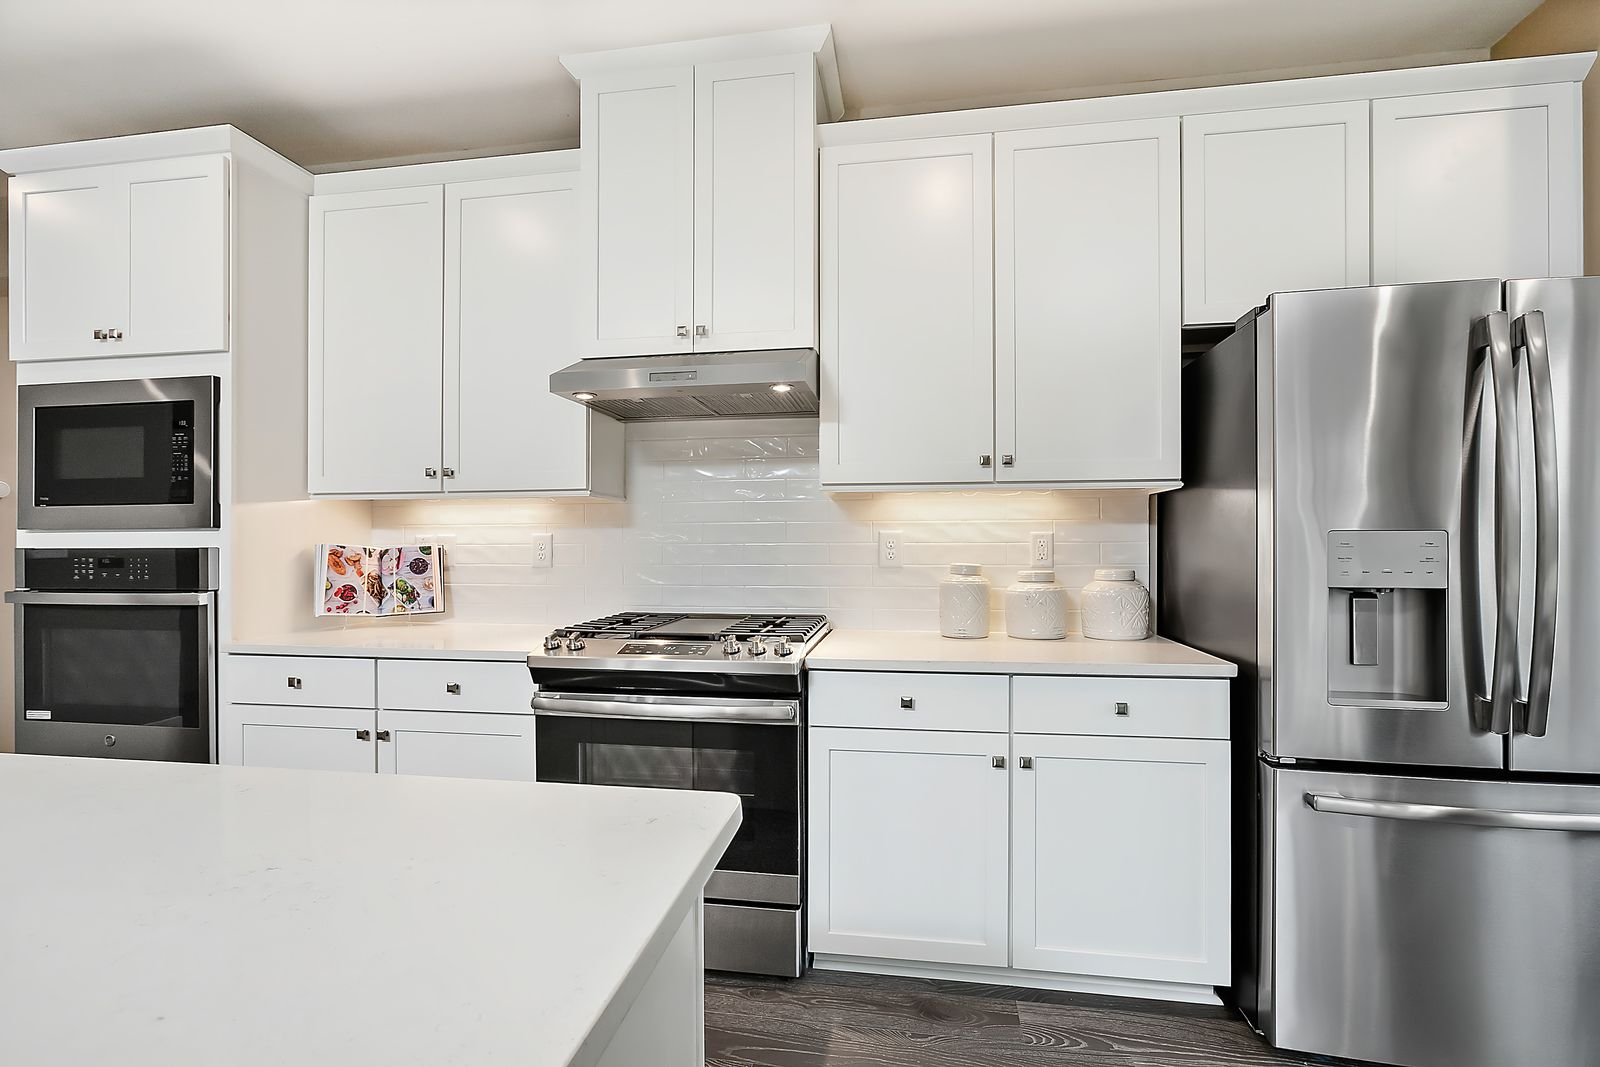 Kitchen featured in the Bramante Ranch Slab - Basement Available By Ryan Homes in Chicago, IL